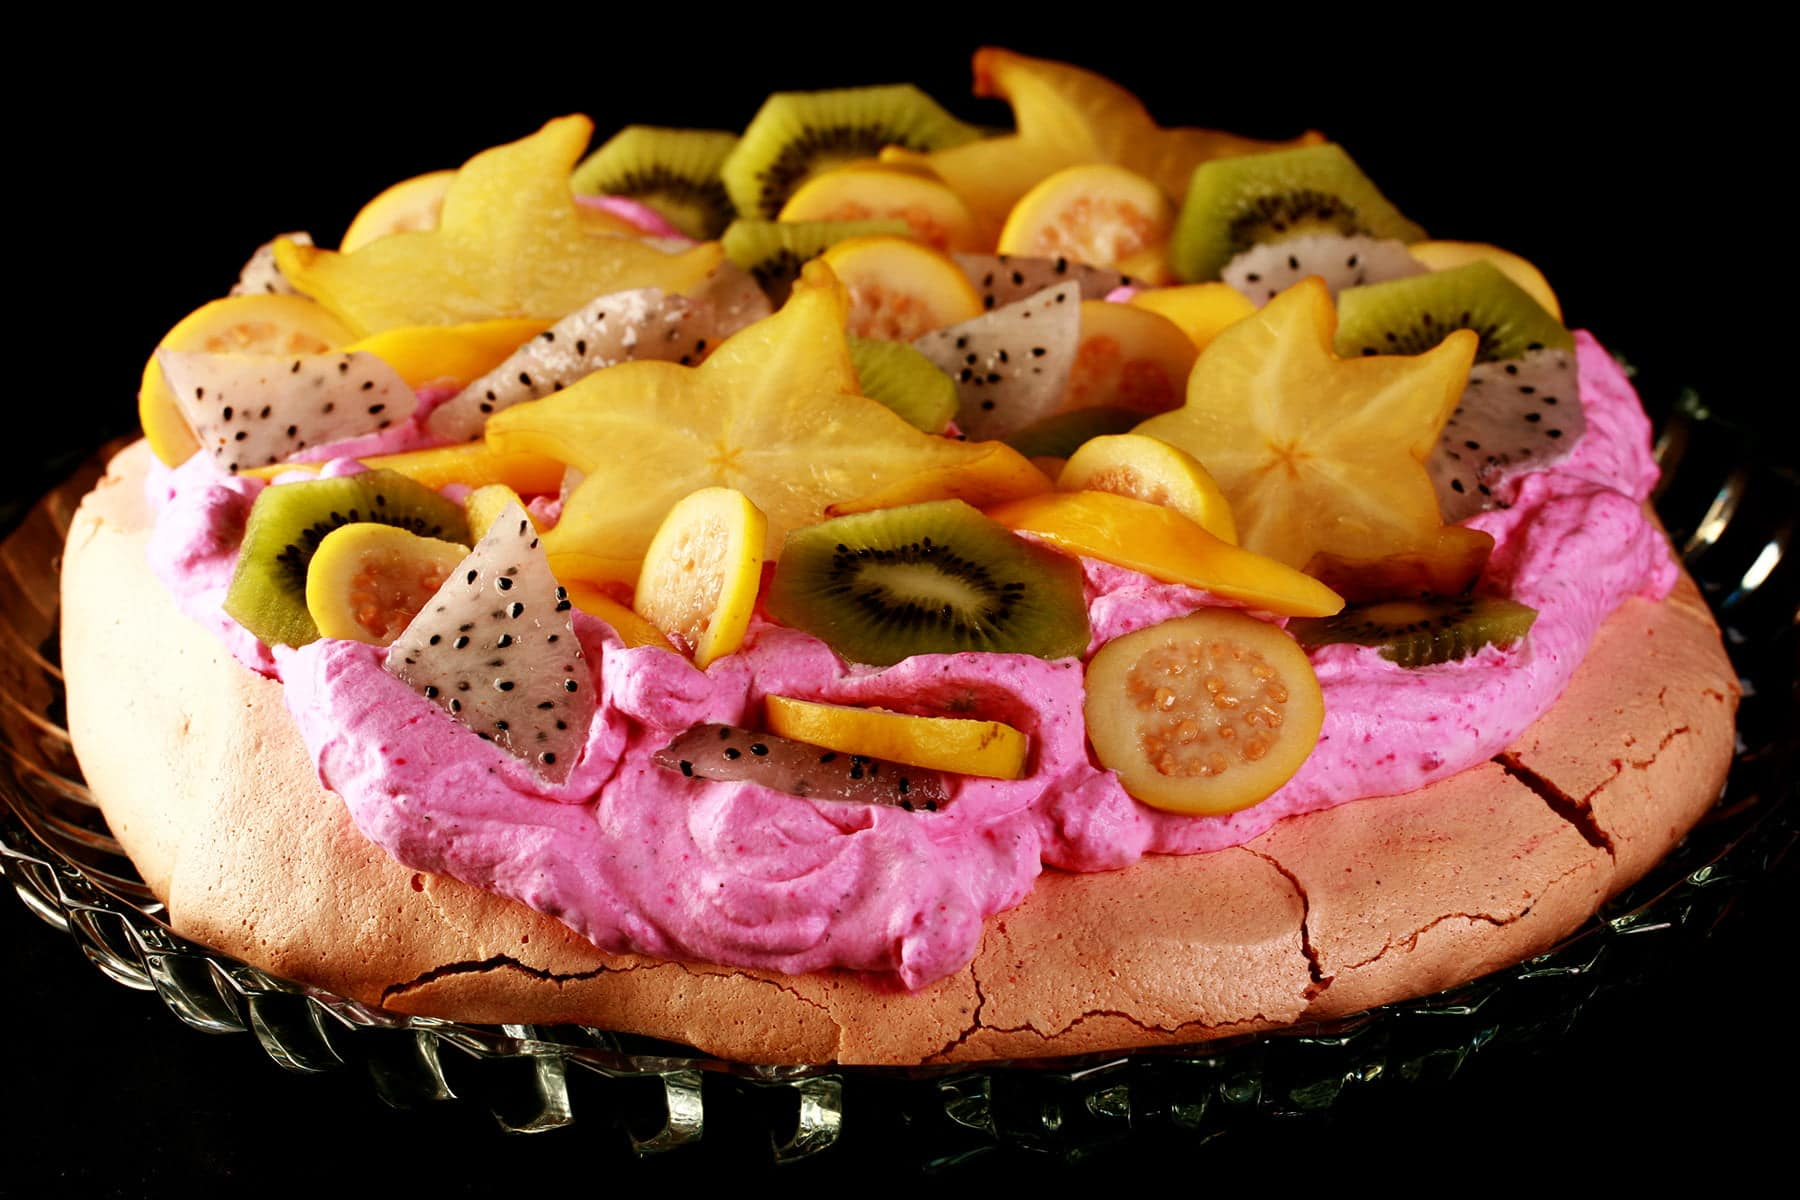 Close up view of a colourful pavlova. It has a light pink meringue base, bright pink whipped cream, and is topped with dragon fruit, star fruit, guava, and mango.